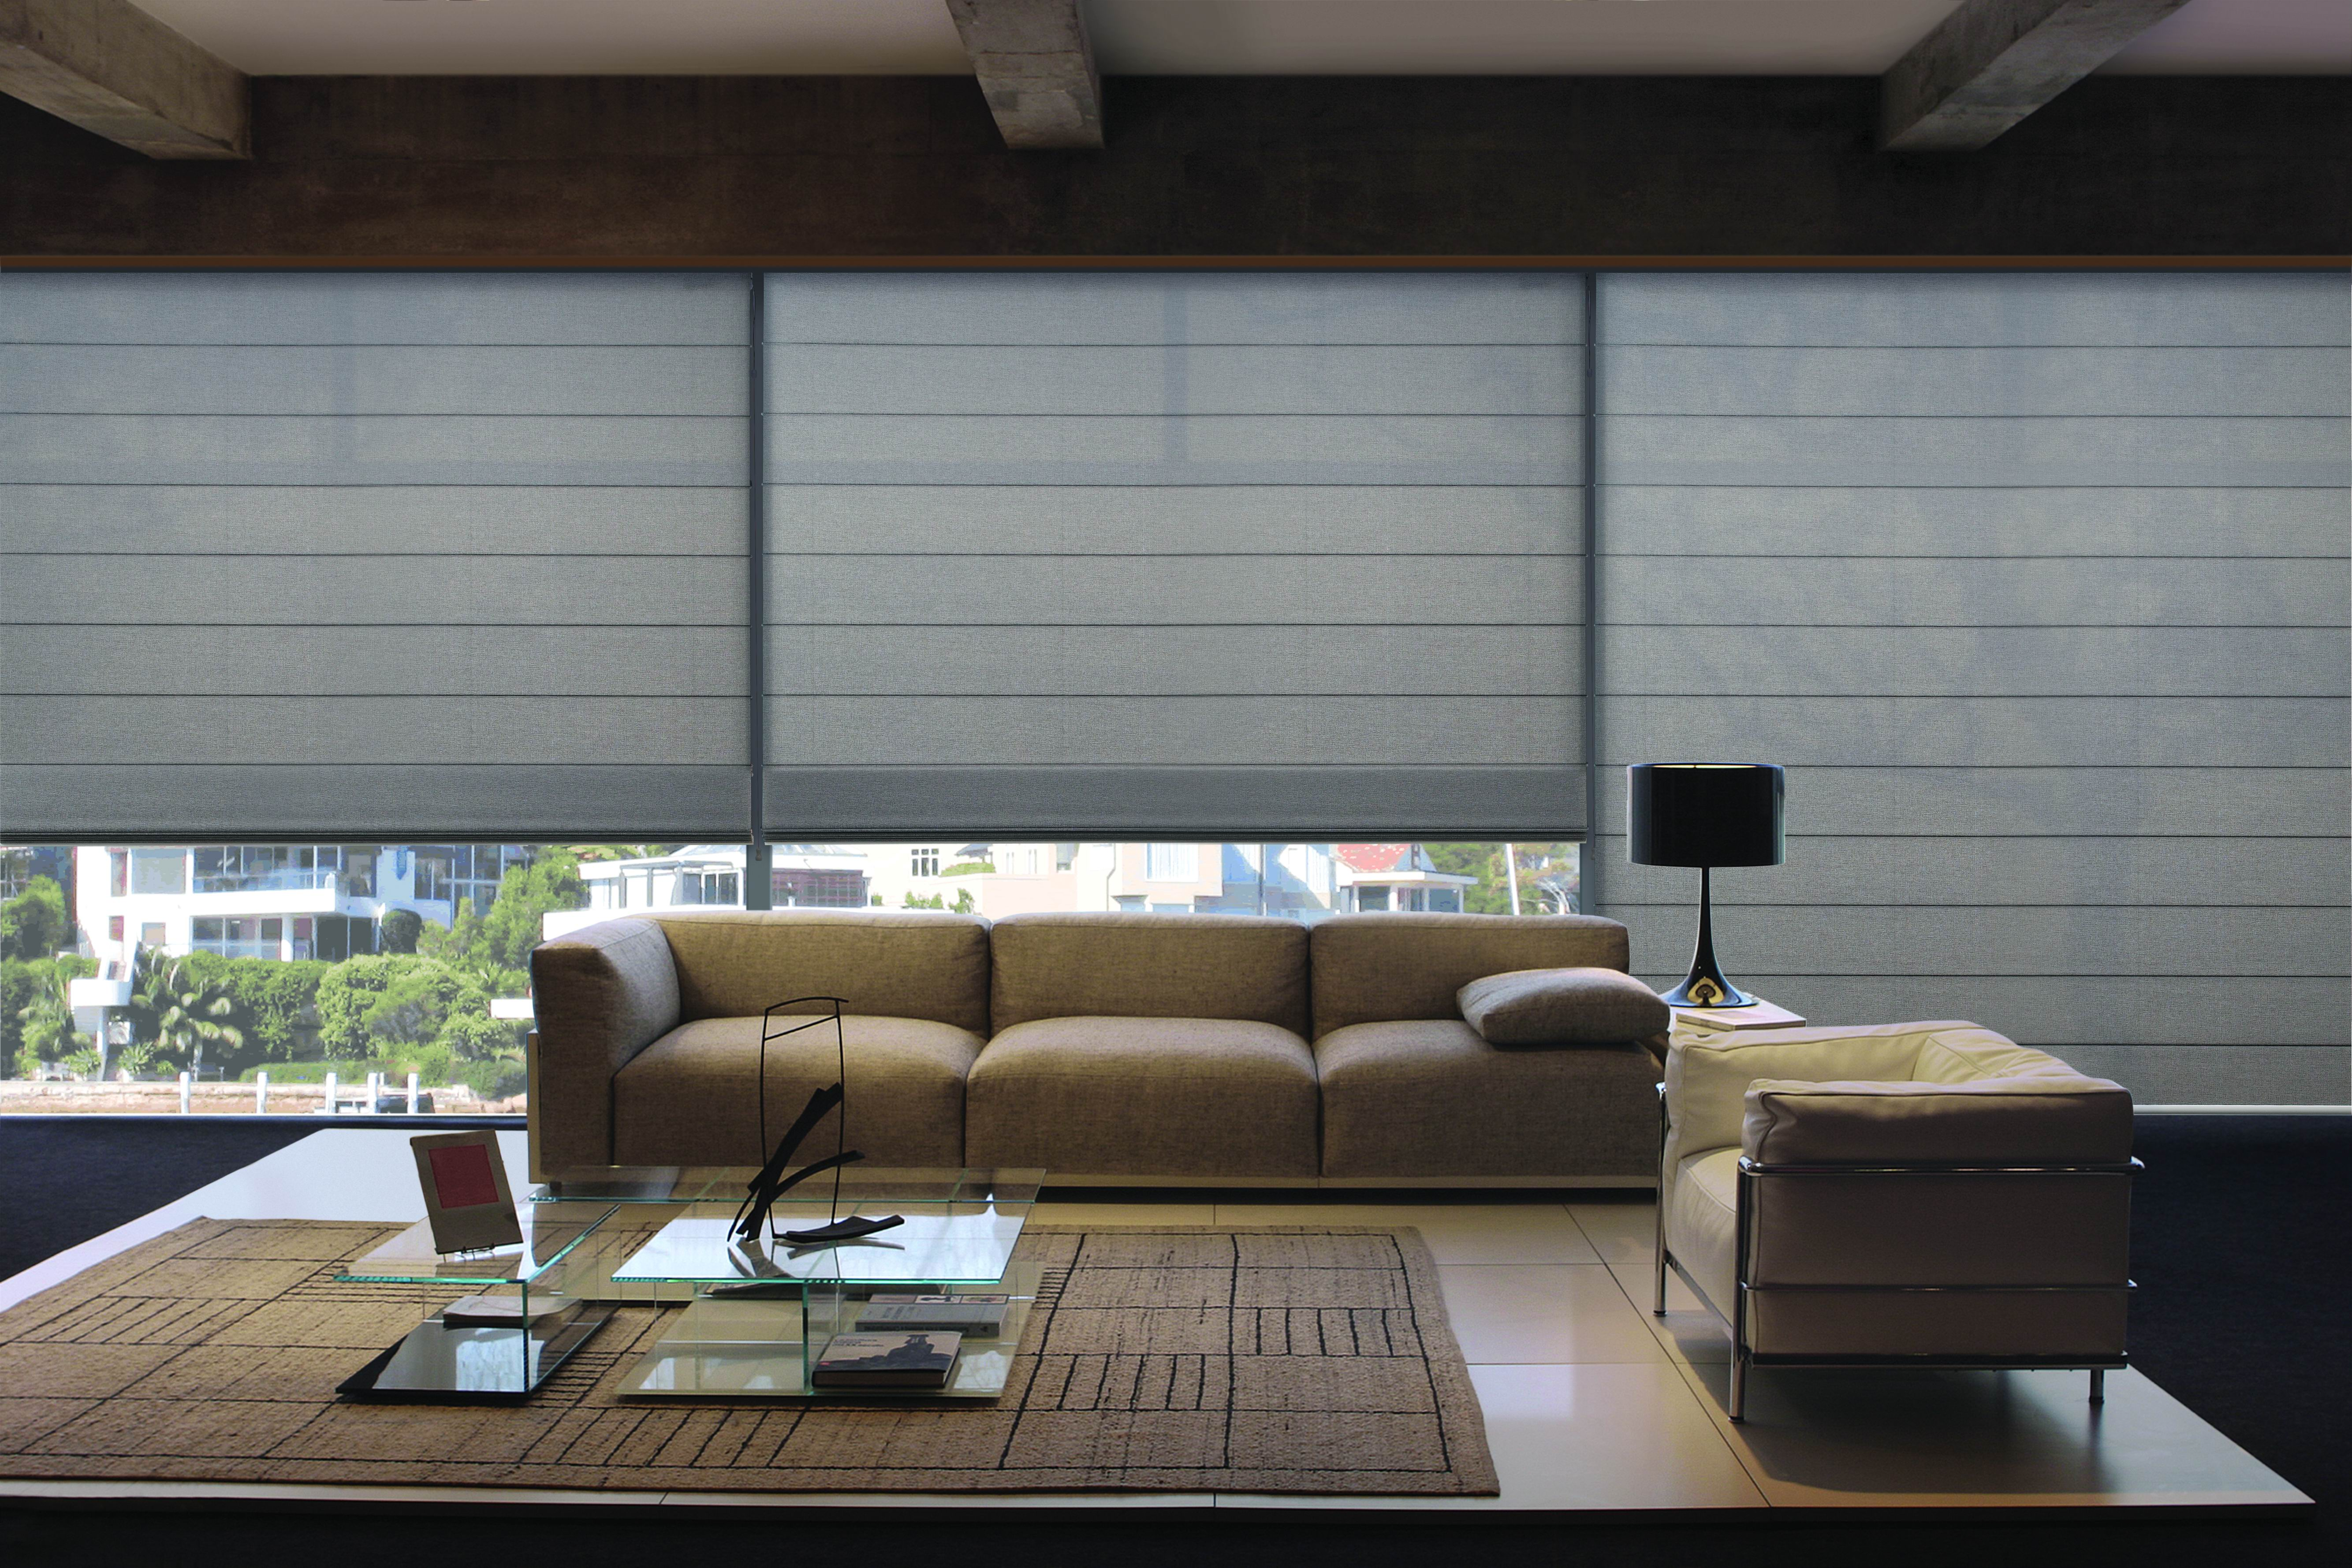 Contemporary Roman Blinds in Translucent Fabric_0.Jpeg